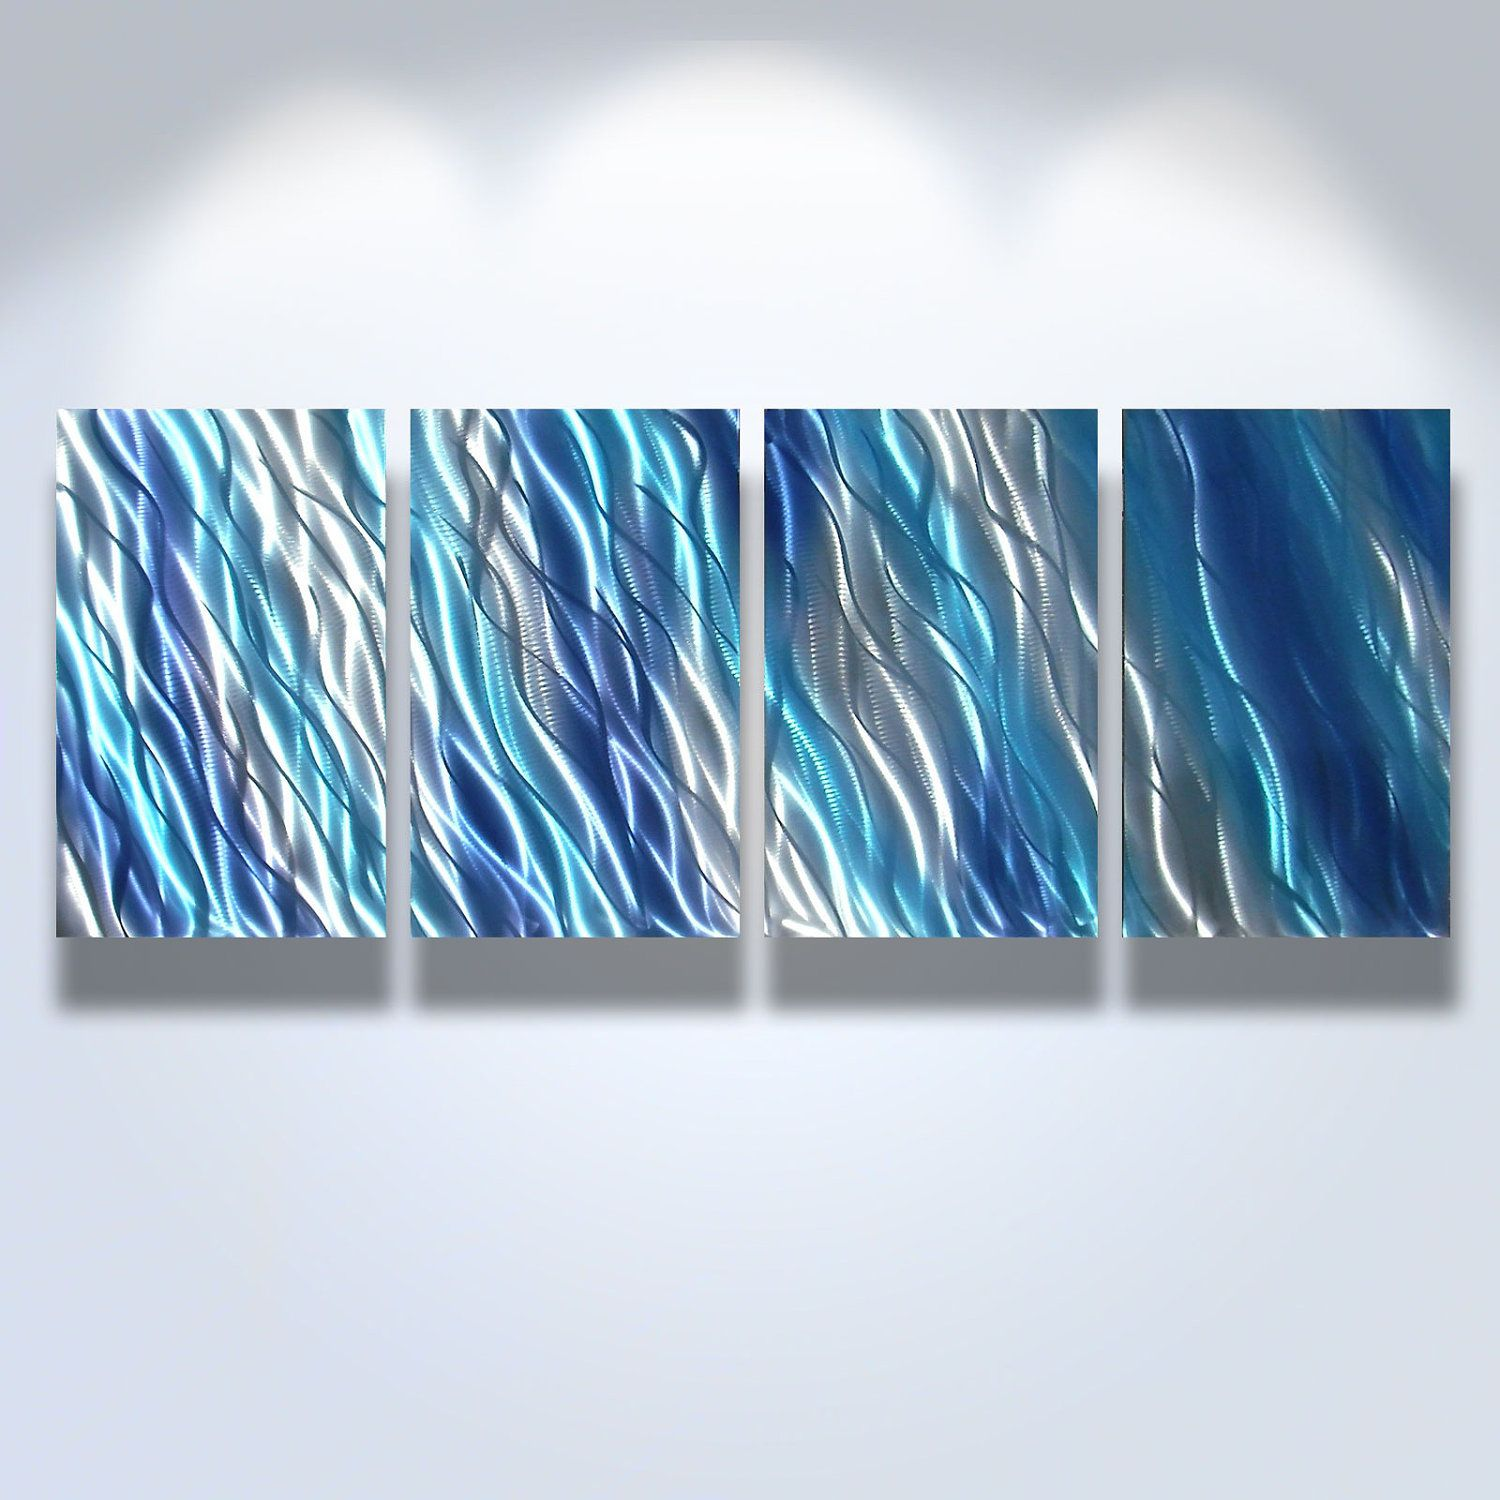 Blue Metal Wall Art Unique Metal Wall Art Decor Abstract Contemporary Modern Sculpture Inspiration Design